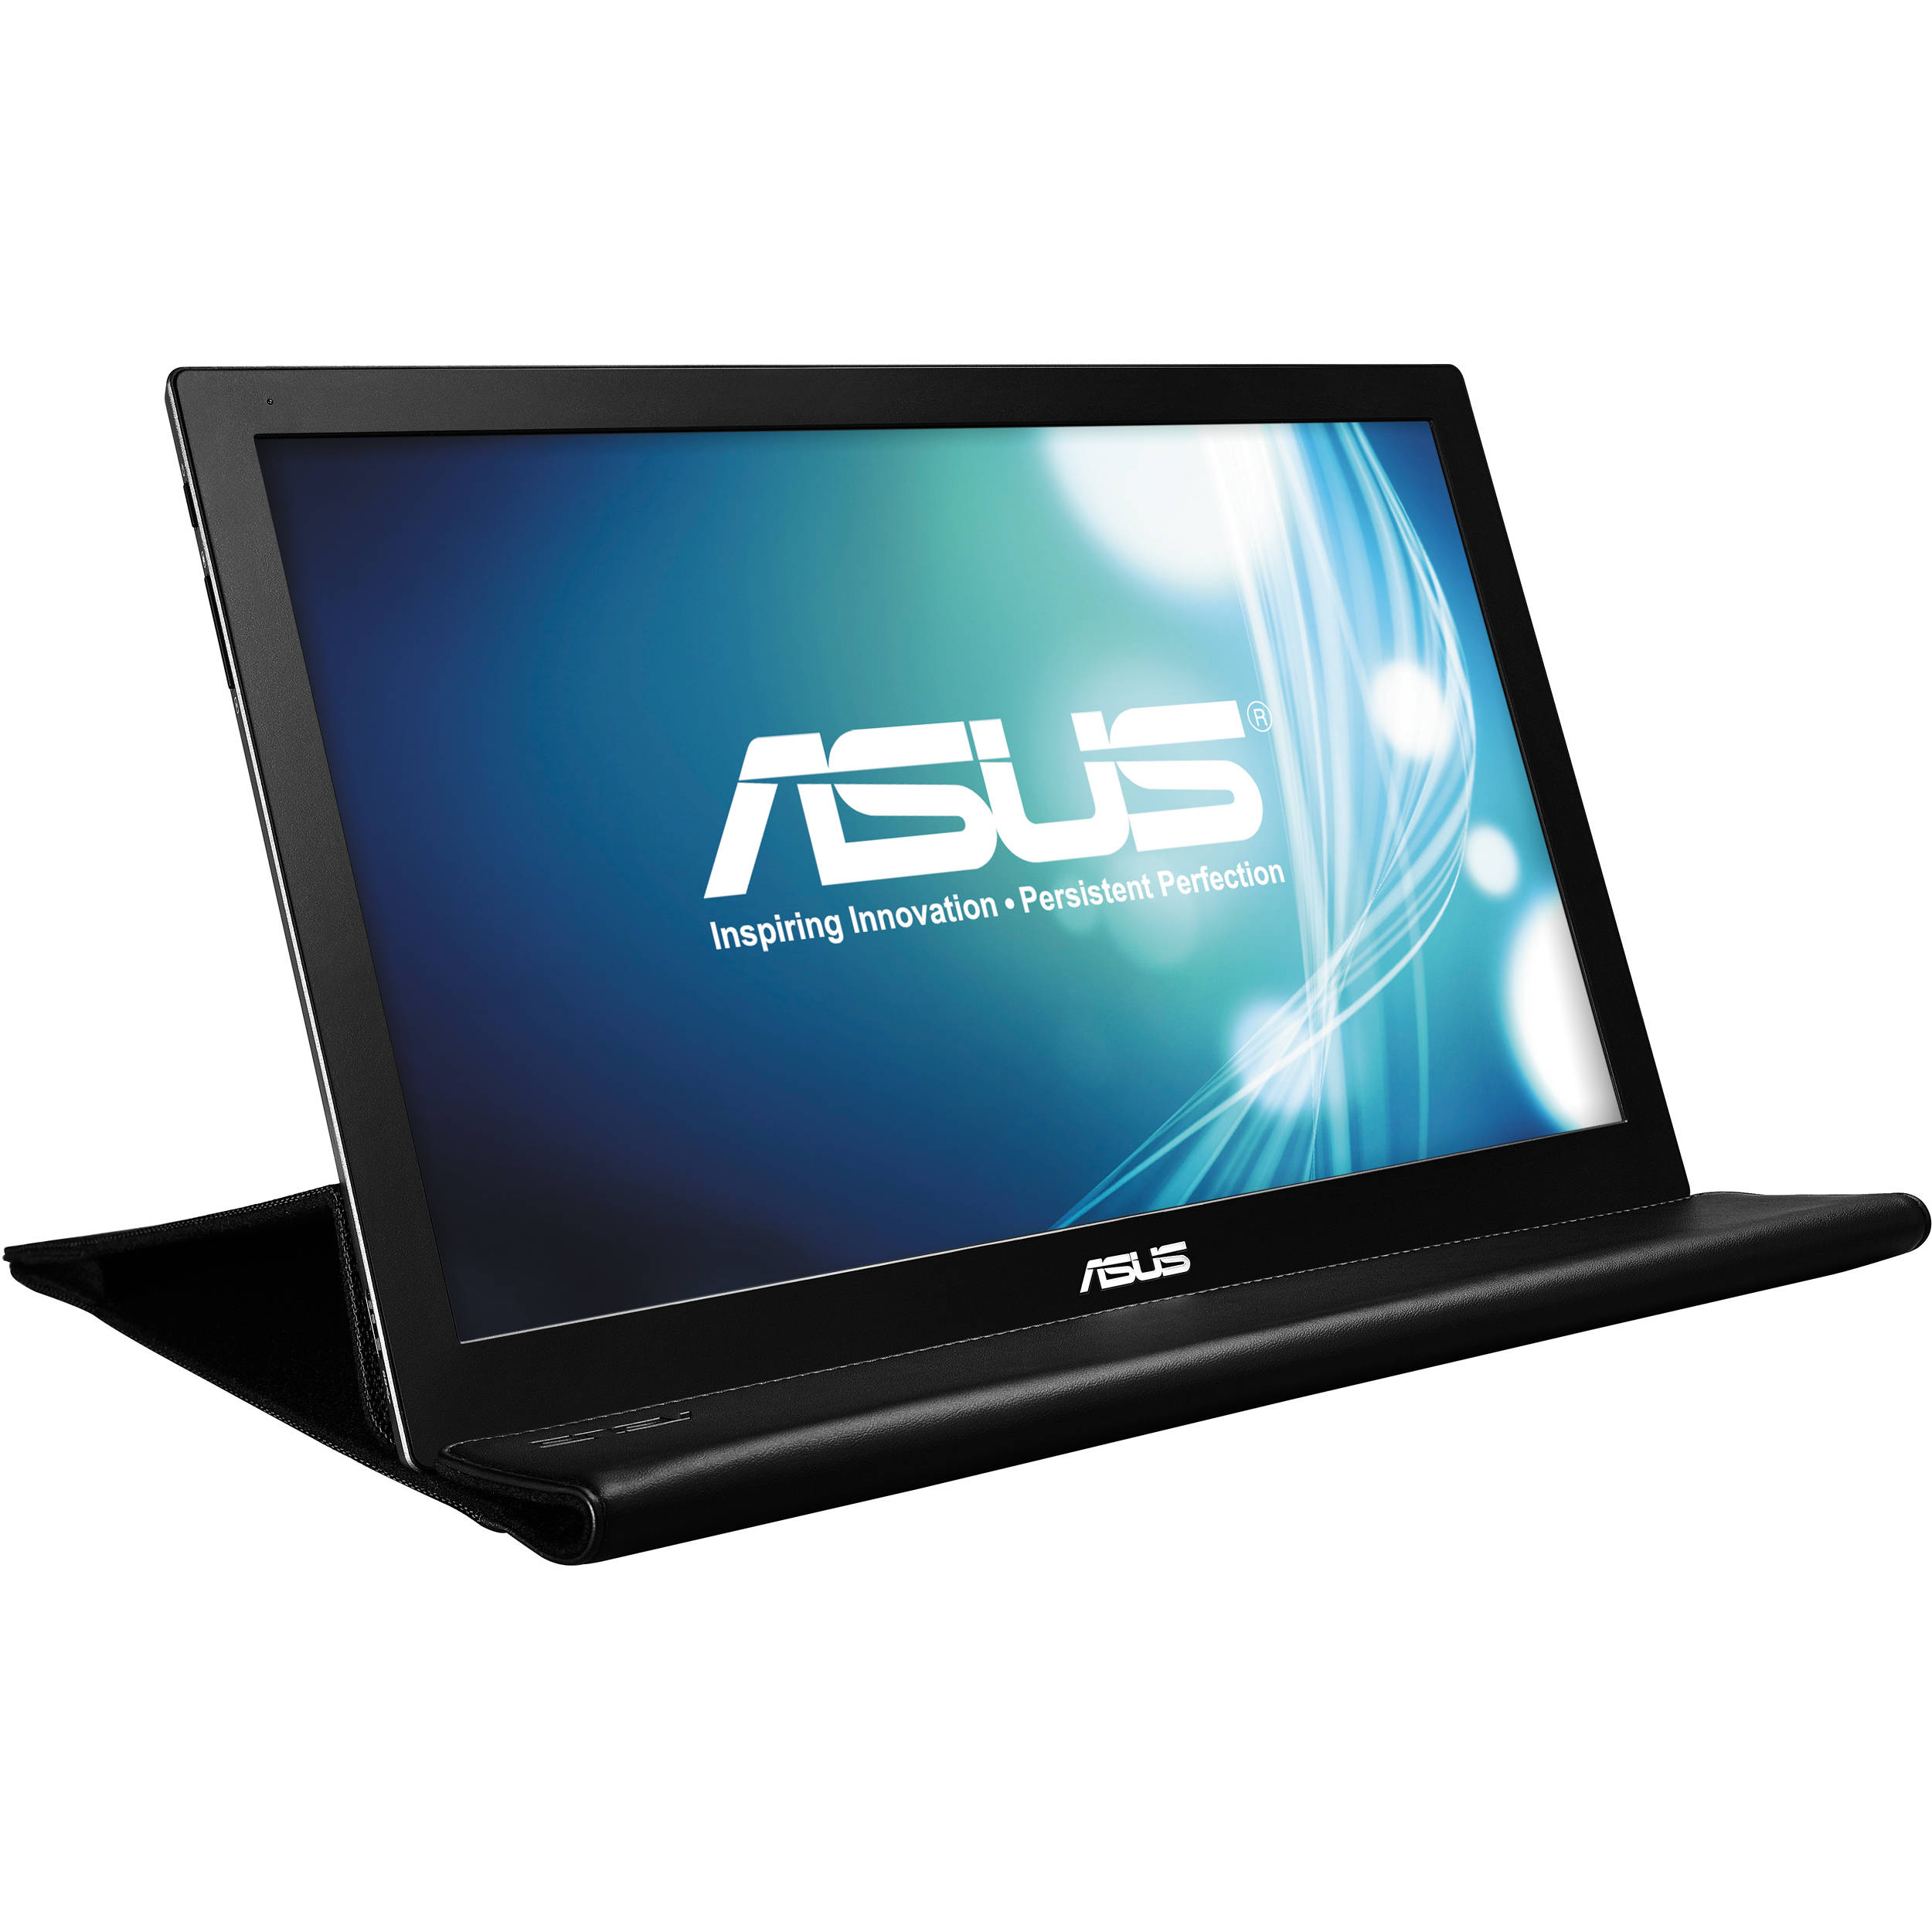 Usb Powered Monitor : Asus mb b quot hd portable wled backlit tn h